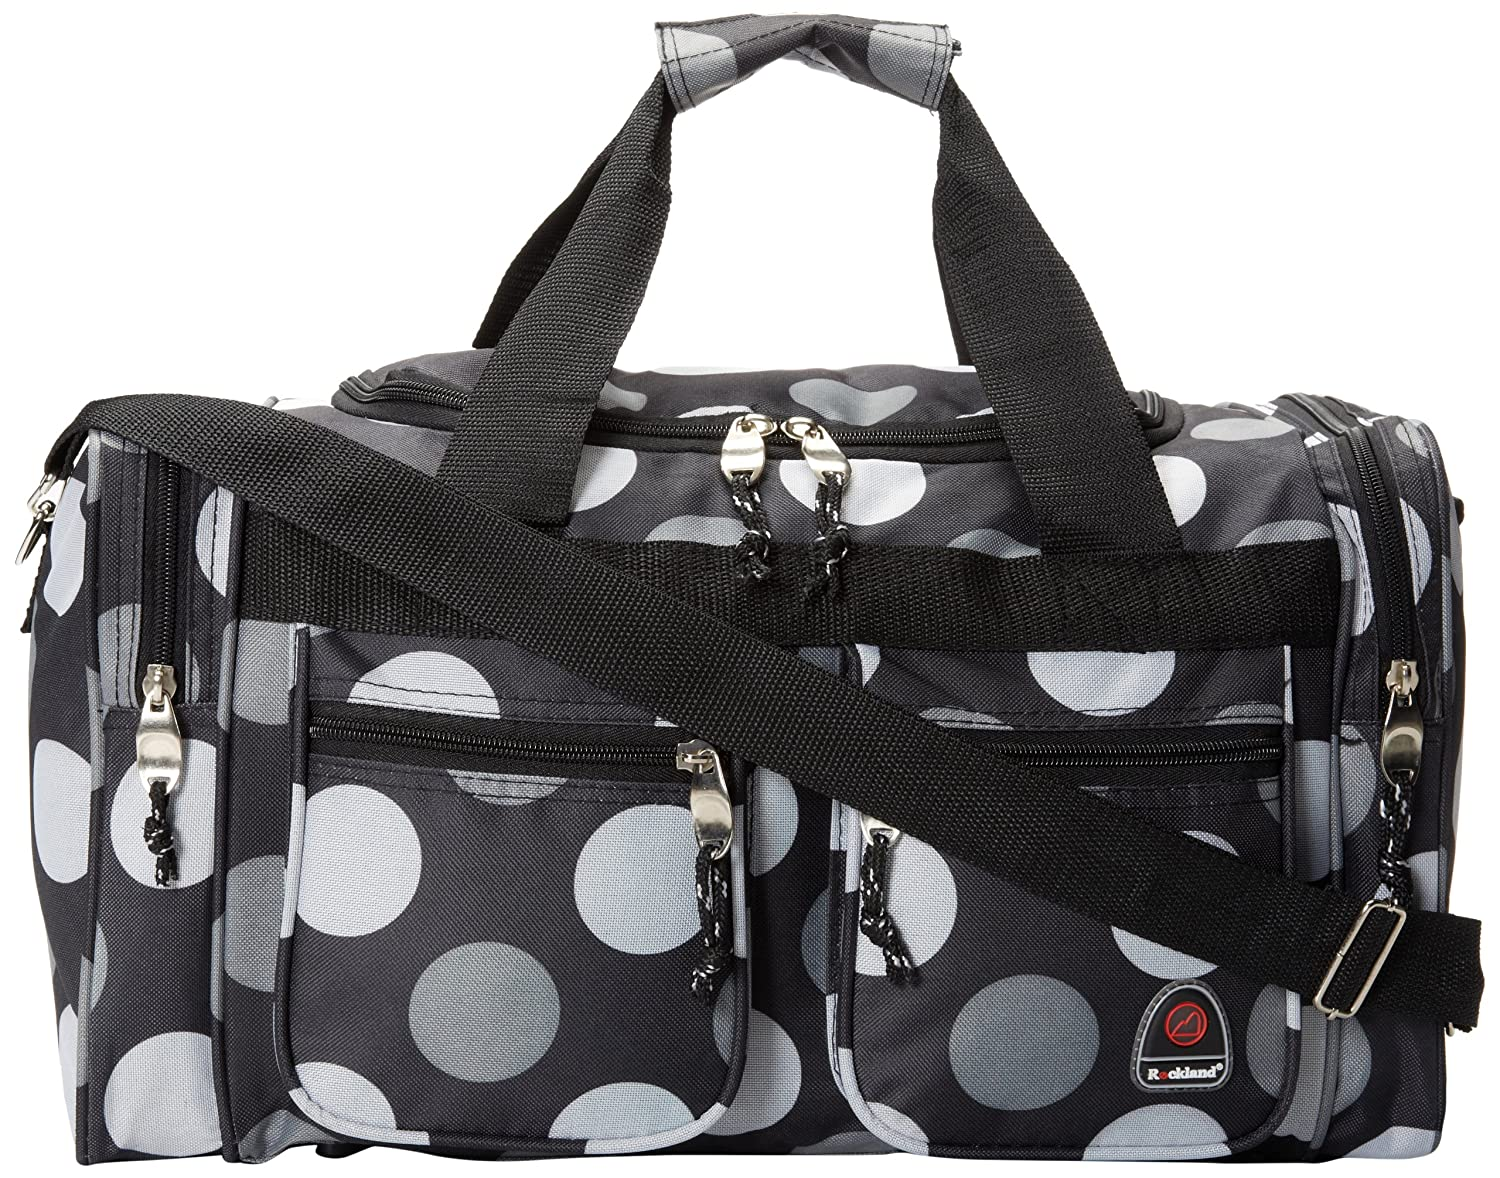 Amazon.com | Rockland Luggage 19 Inch Tote Bag, Black, One Size | Travel Totes